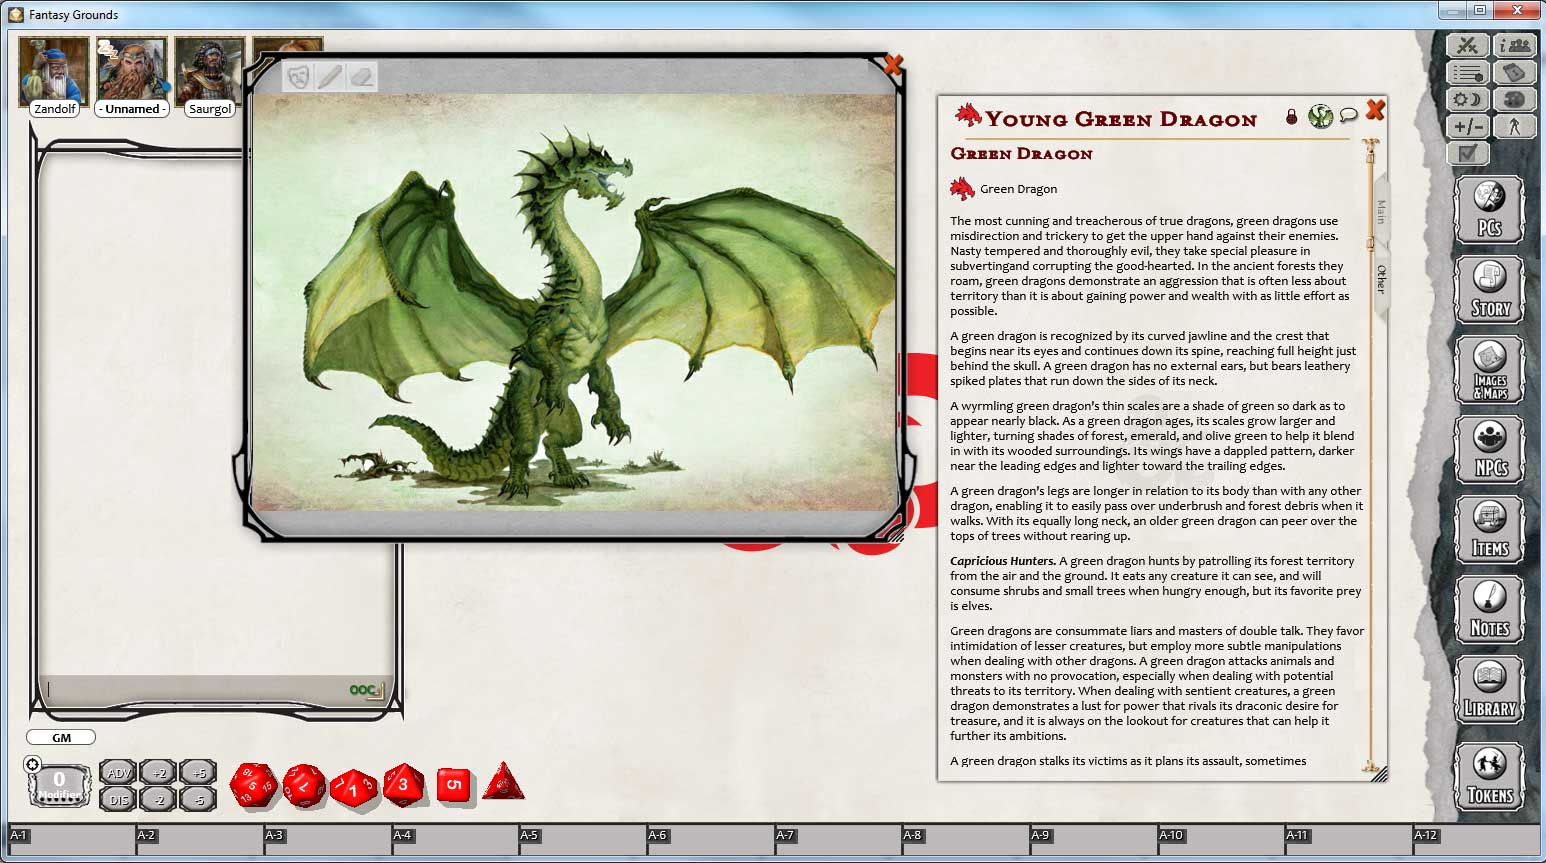 Dungeons & Dragons Comes to Virtual Tabletop